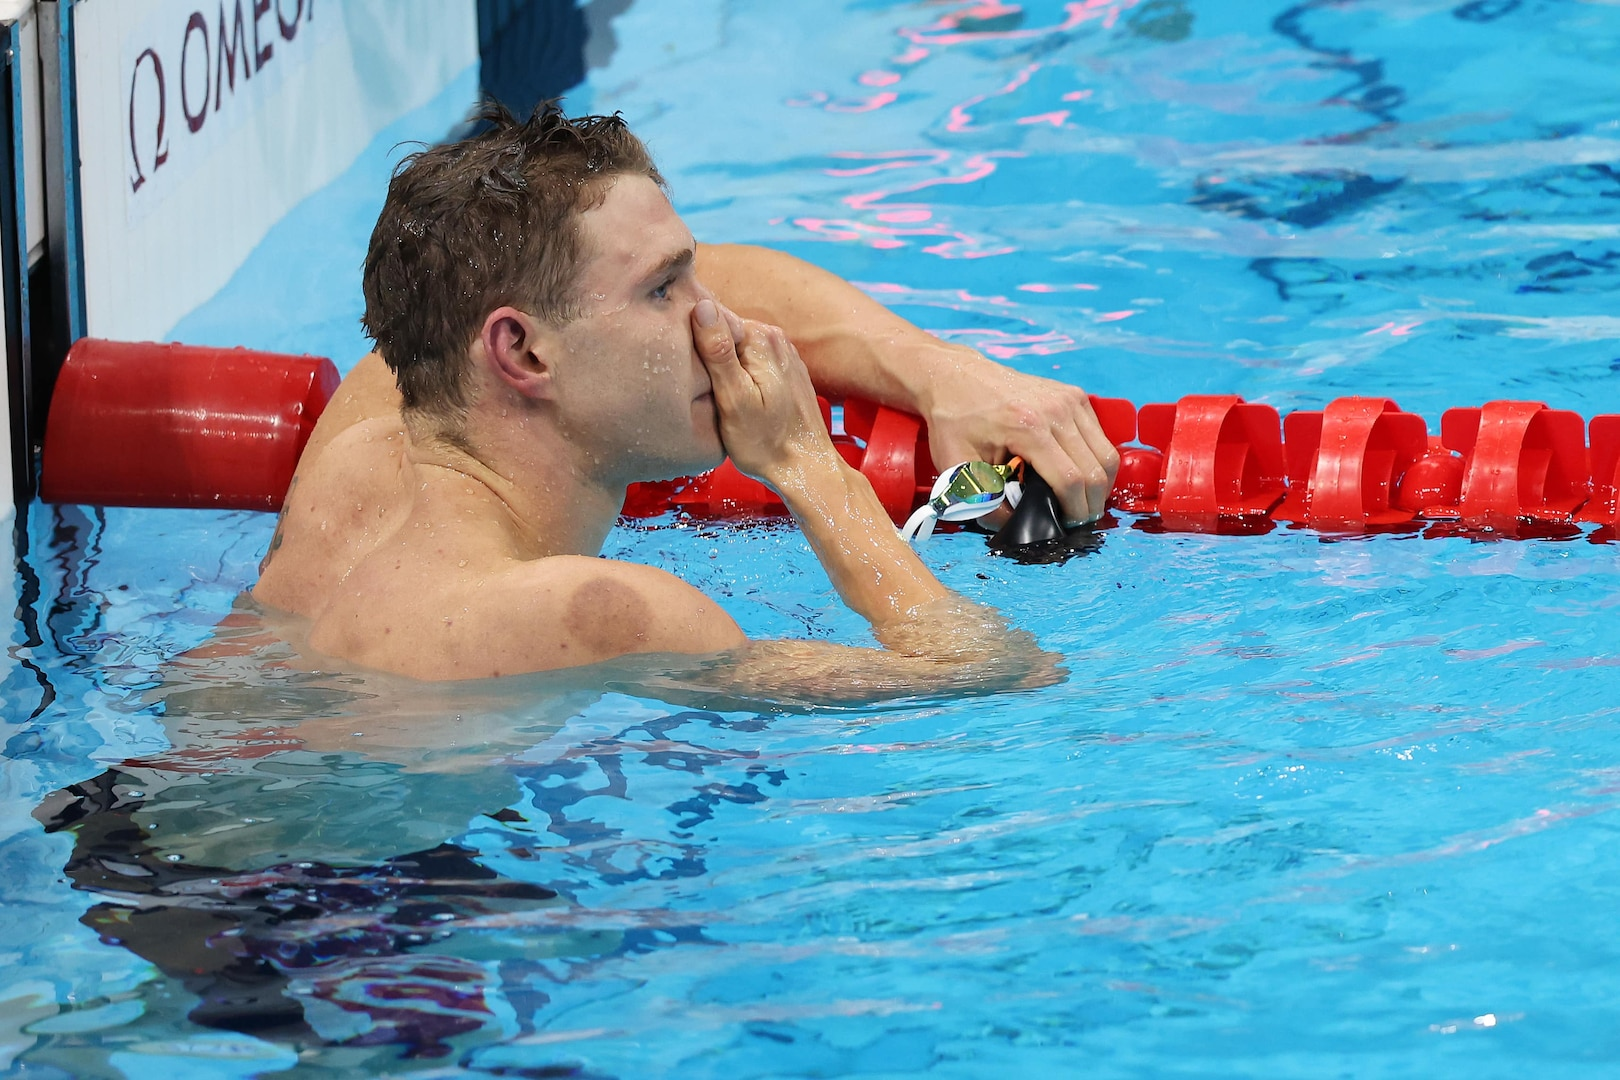 Ryan Murphy of Team United States reacts after competing in the Men's 200m Backstroke